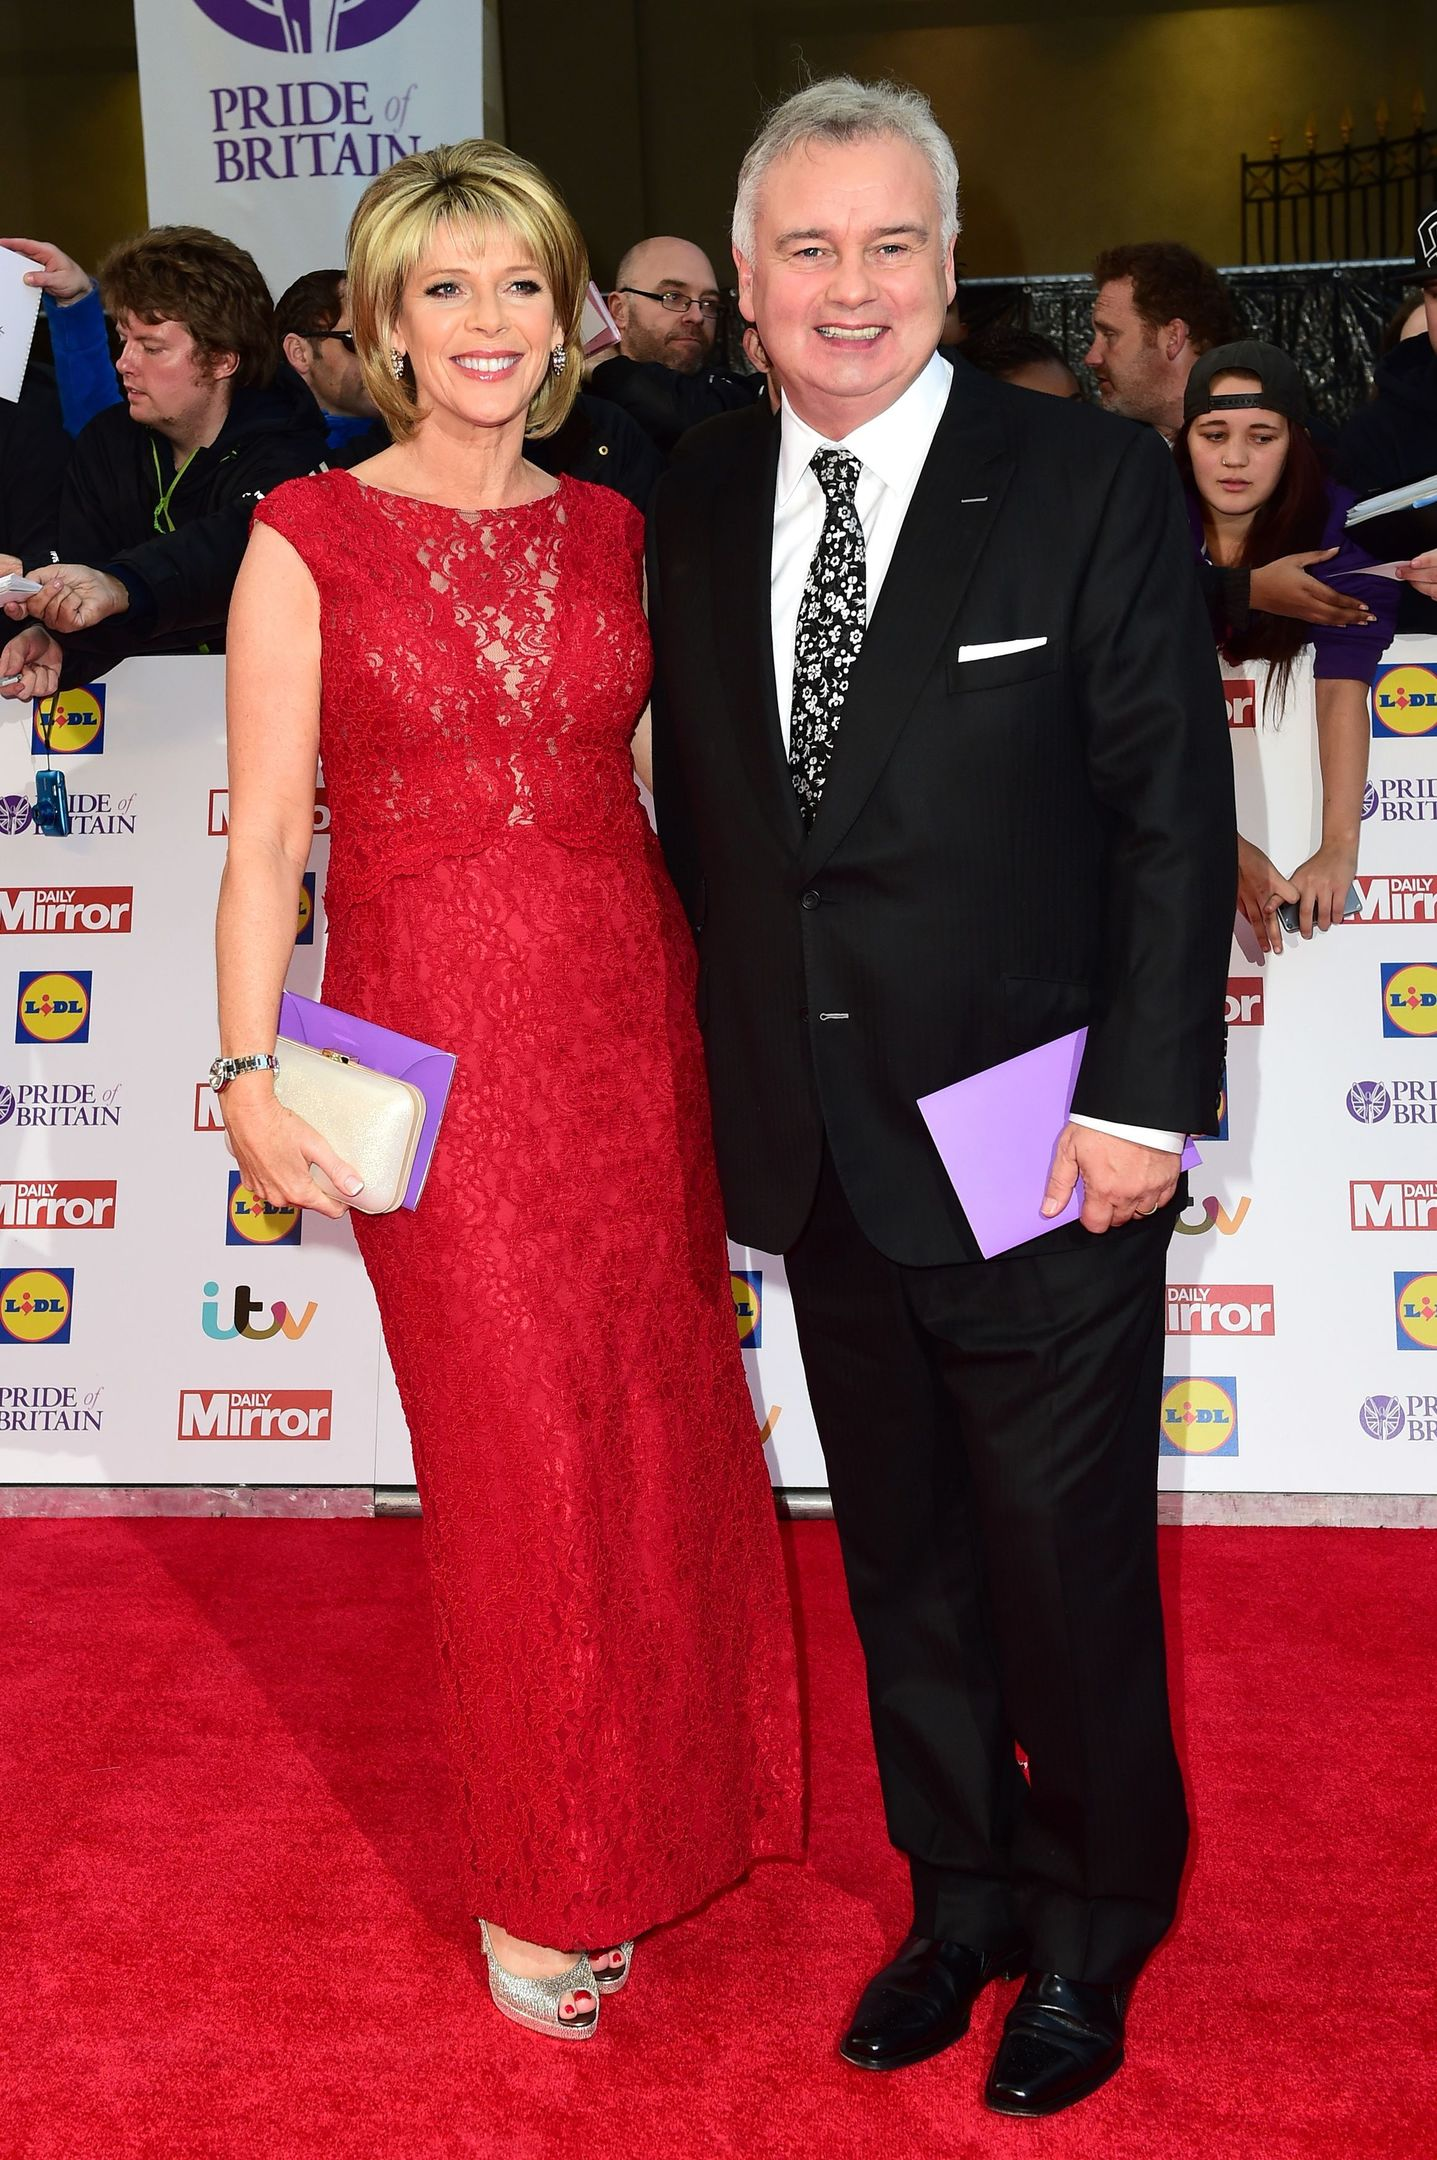 28/09/15 PA File Photo of Eamonn Holmes and Ruth Langsford (left) arriving for The Pride of Britain Awards 2015, at Grosvenor House, Park Lane, London. See PA Feature WELLBEING Langsford. Picture credit should read: Ian West/PA Photos. WARNING: This picture must only be used to accompany PA Feature WELLBEING Langsford